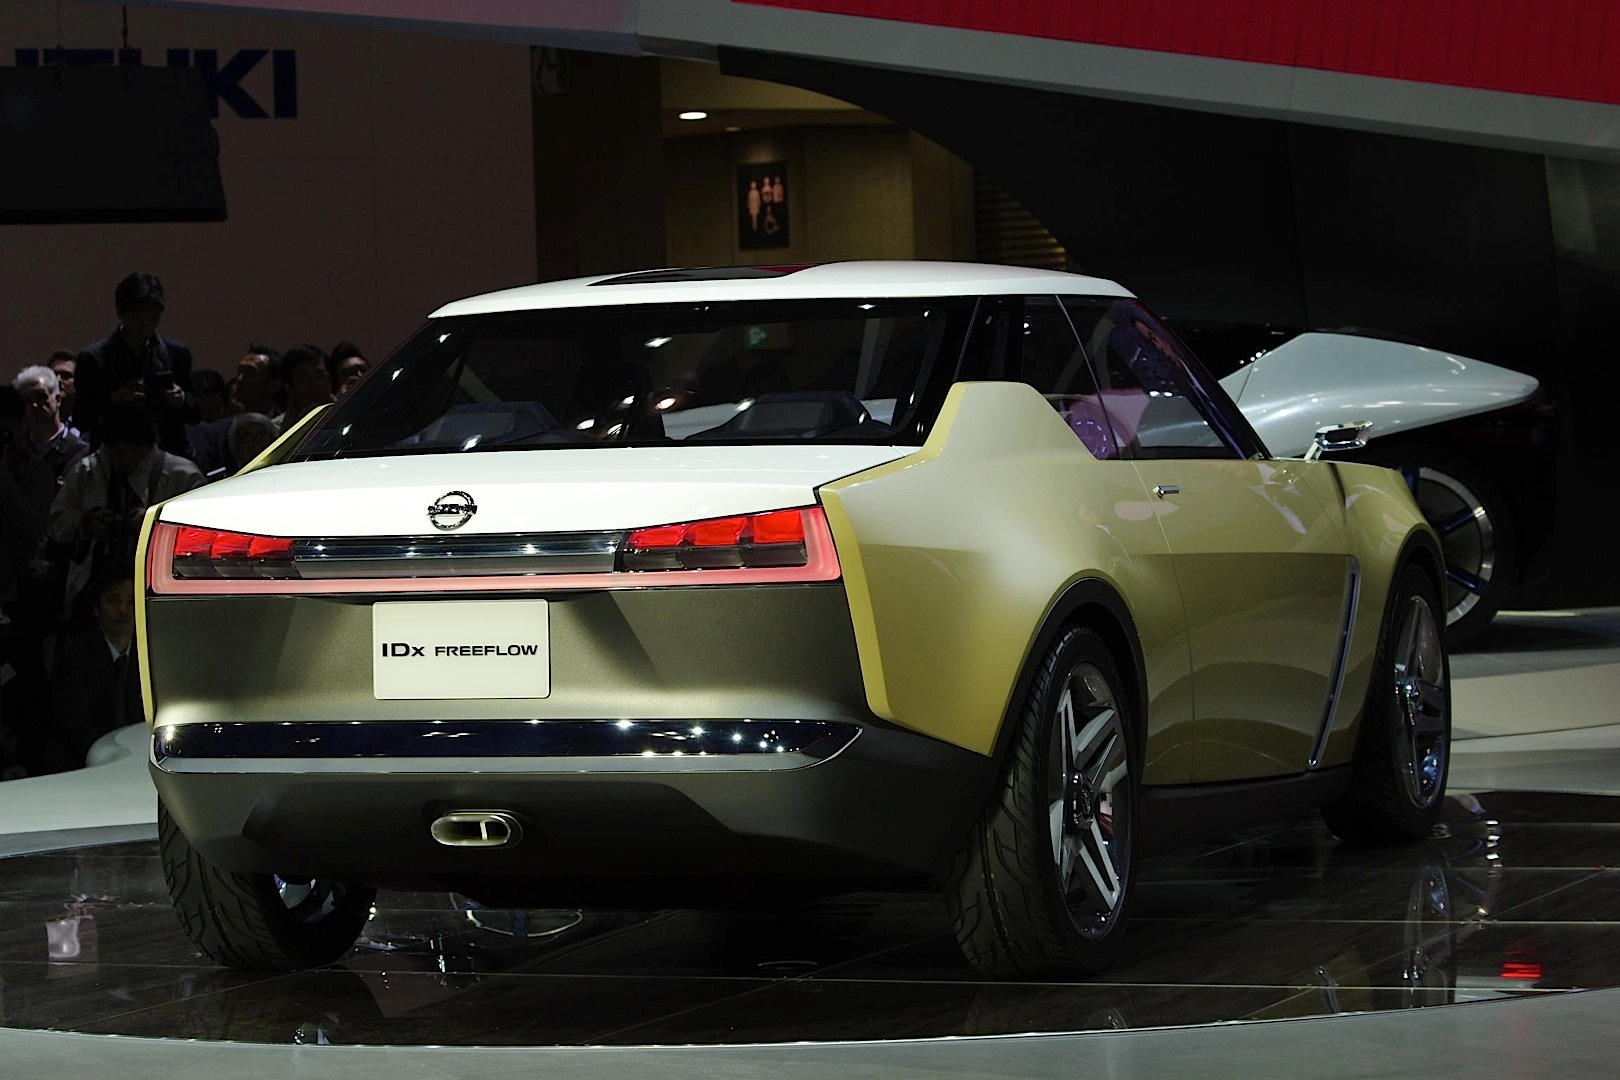 Patrol Nismo >> Nissan IDx Freeflow Concept Hints at Production RWD Sportscar in Tokyo [Live Photos] - autoevolution